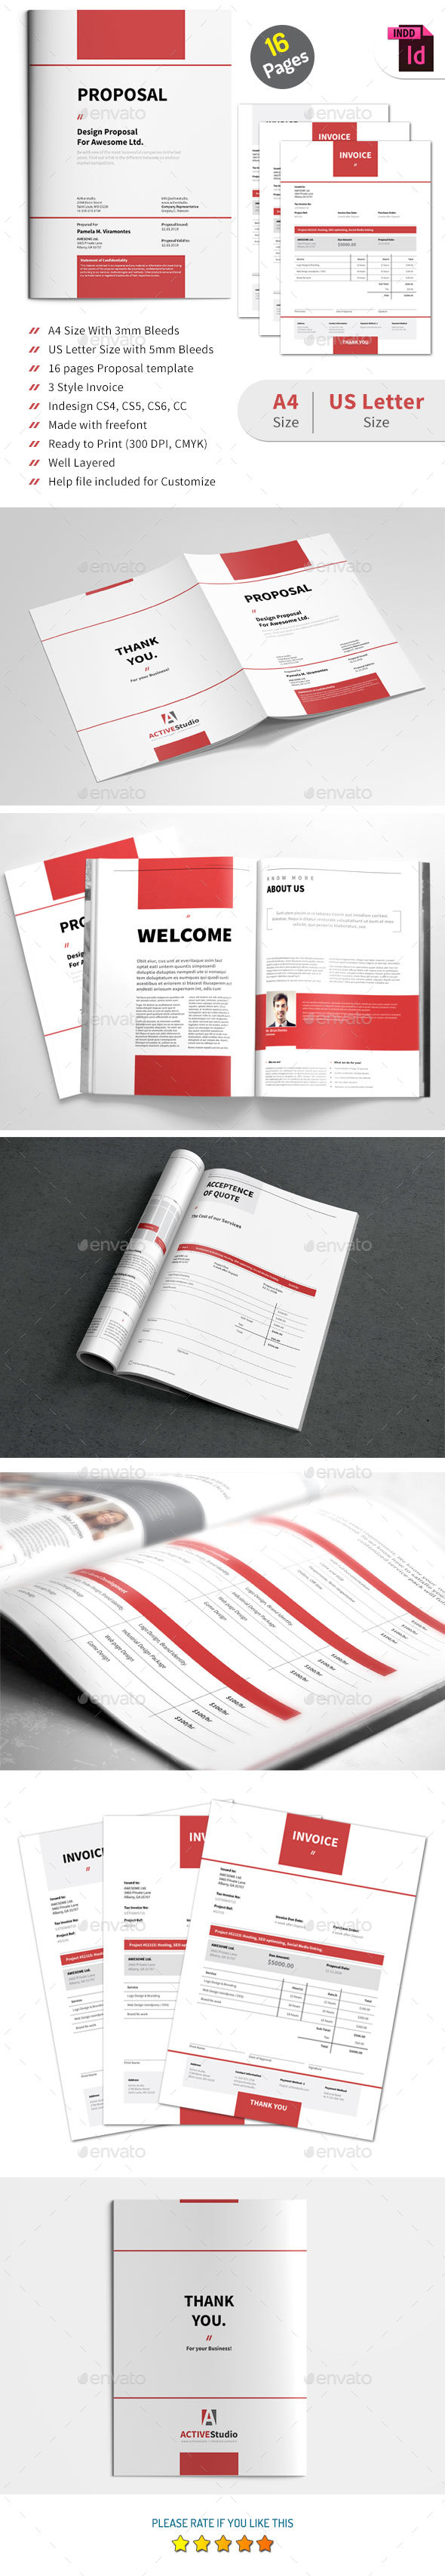 Proposal - Proposals & Invoices Stationery